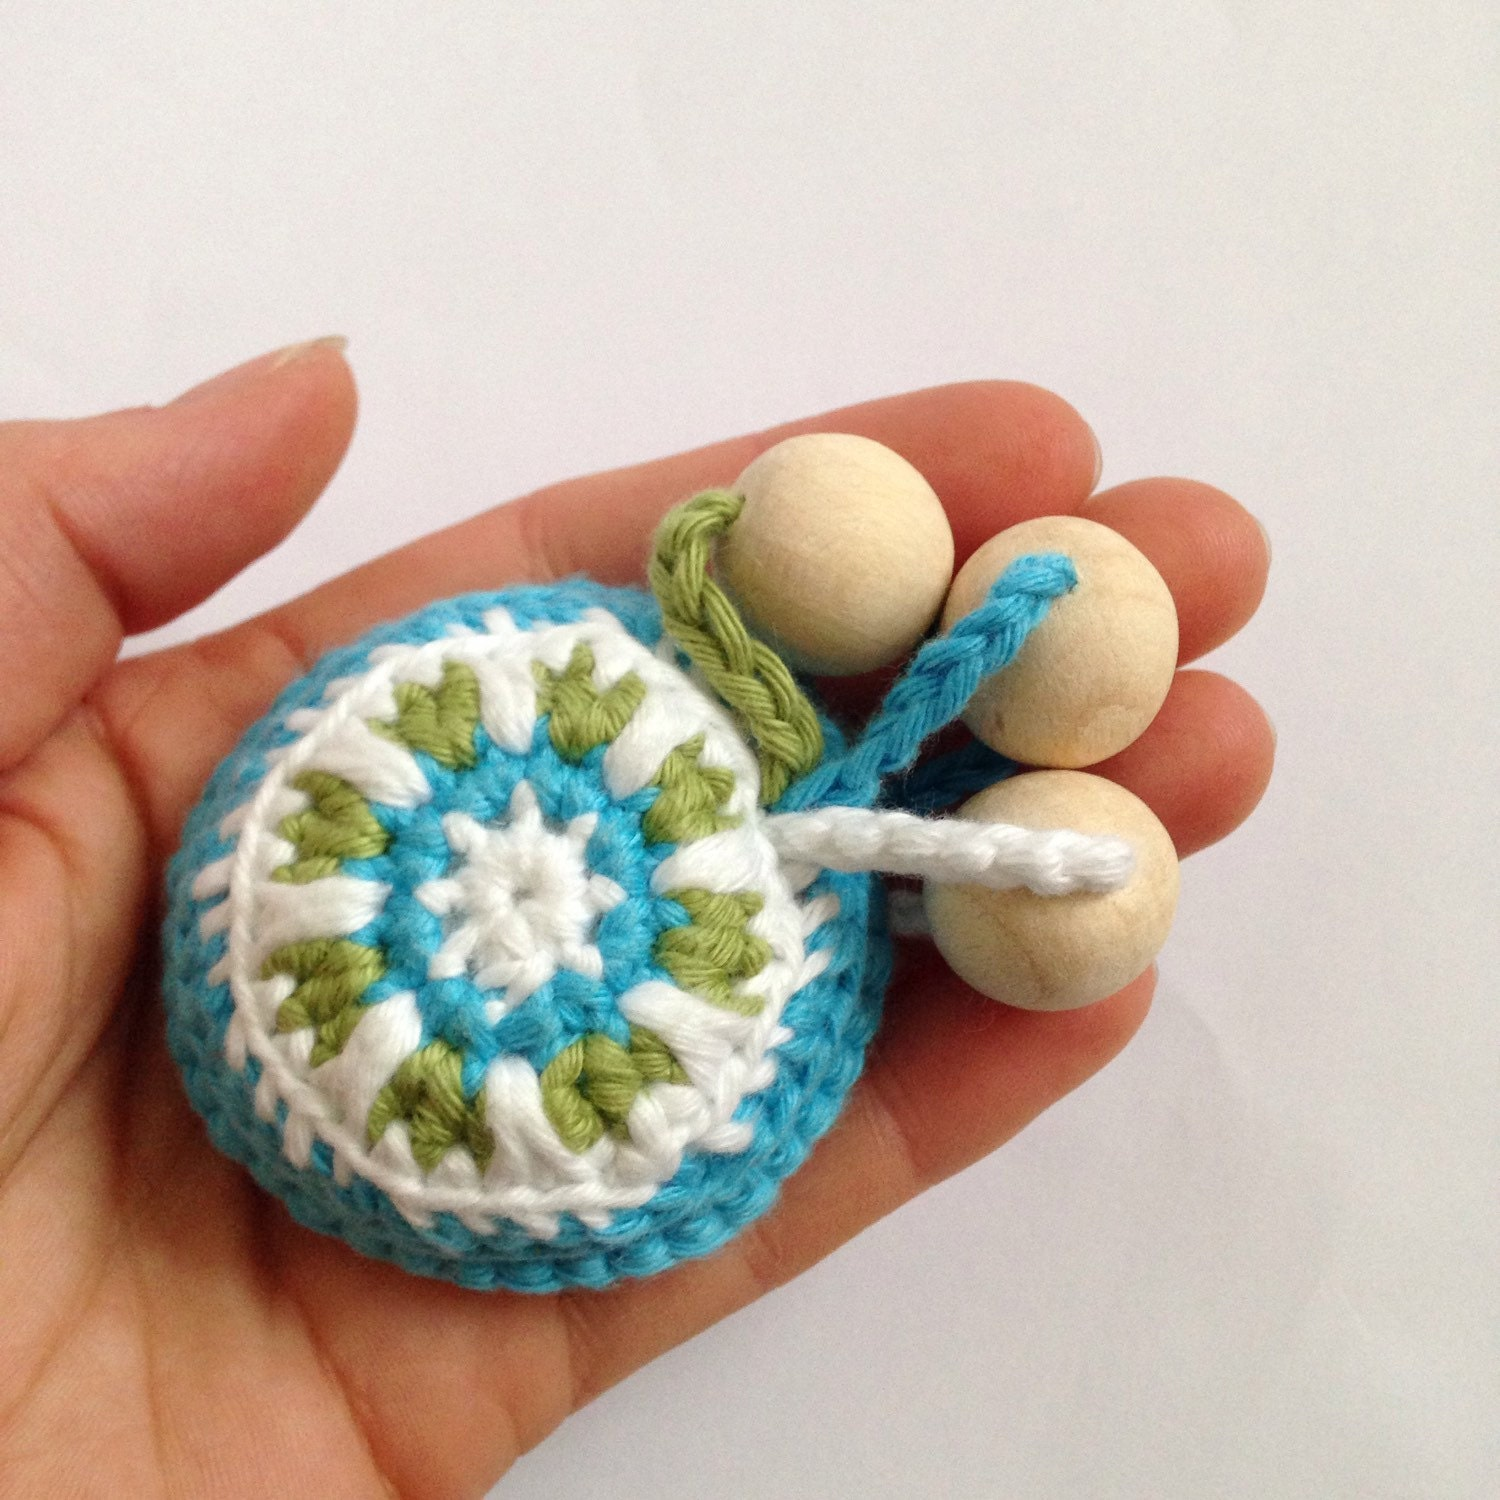 Teething toy crochet rattle with wooden beads